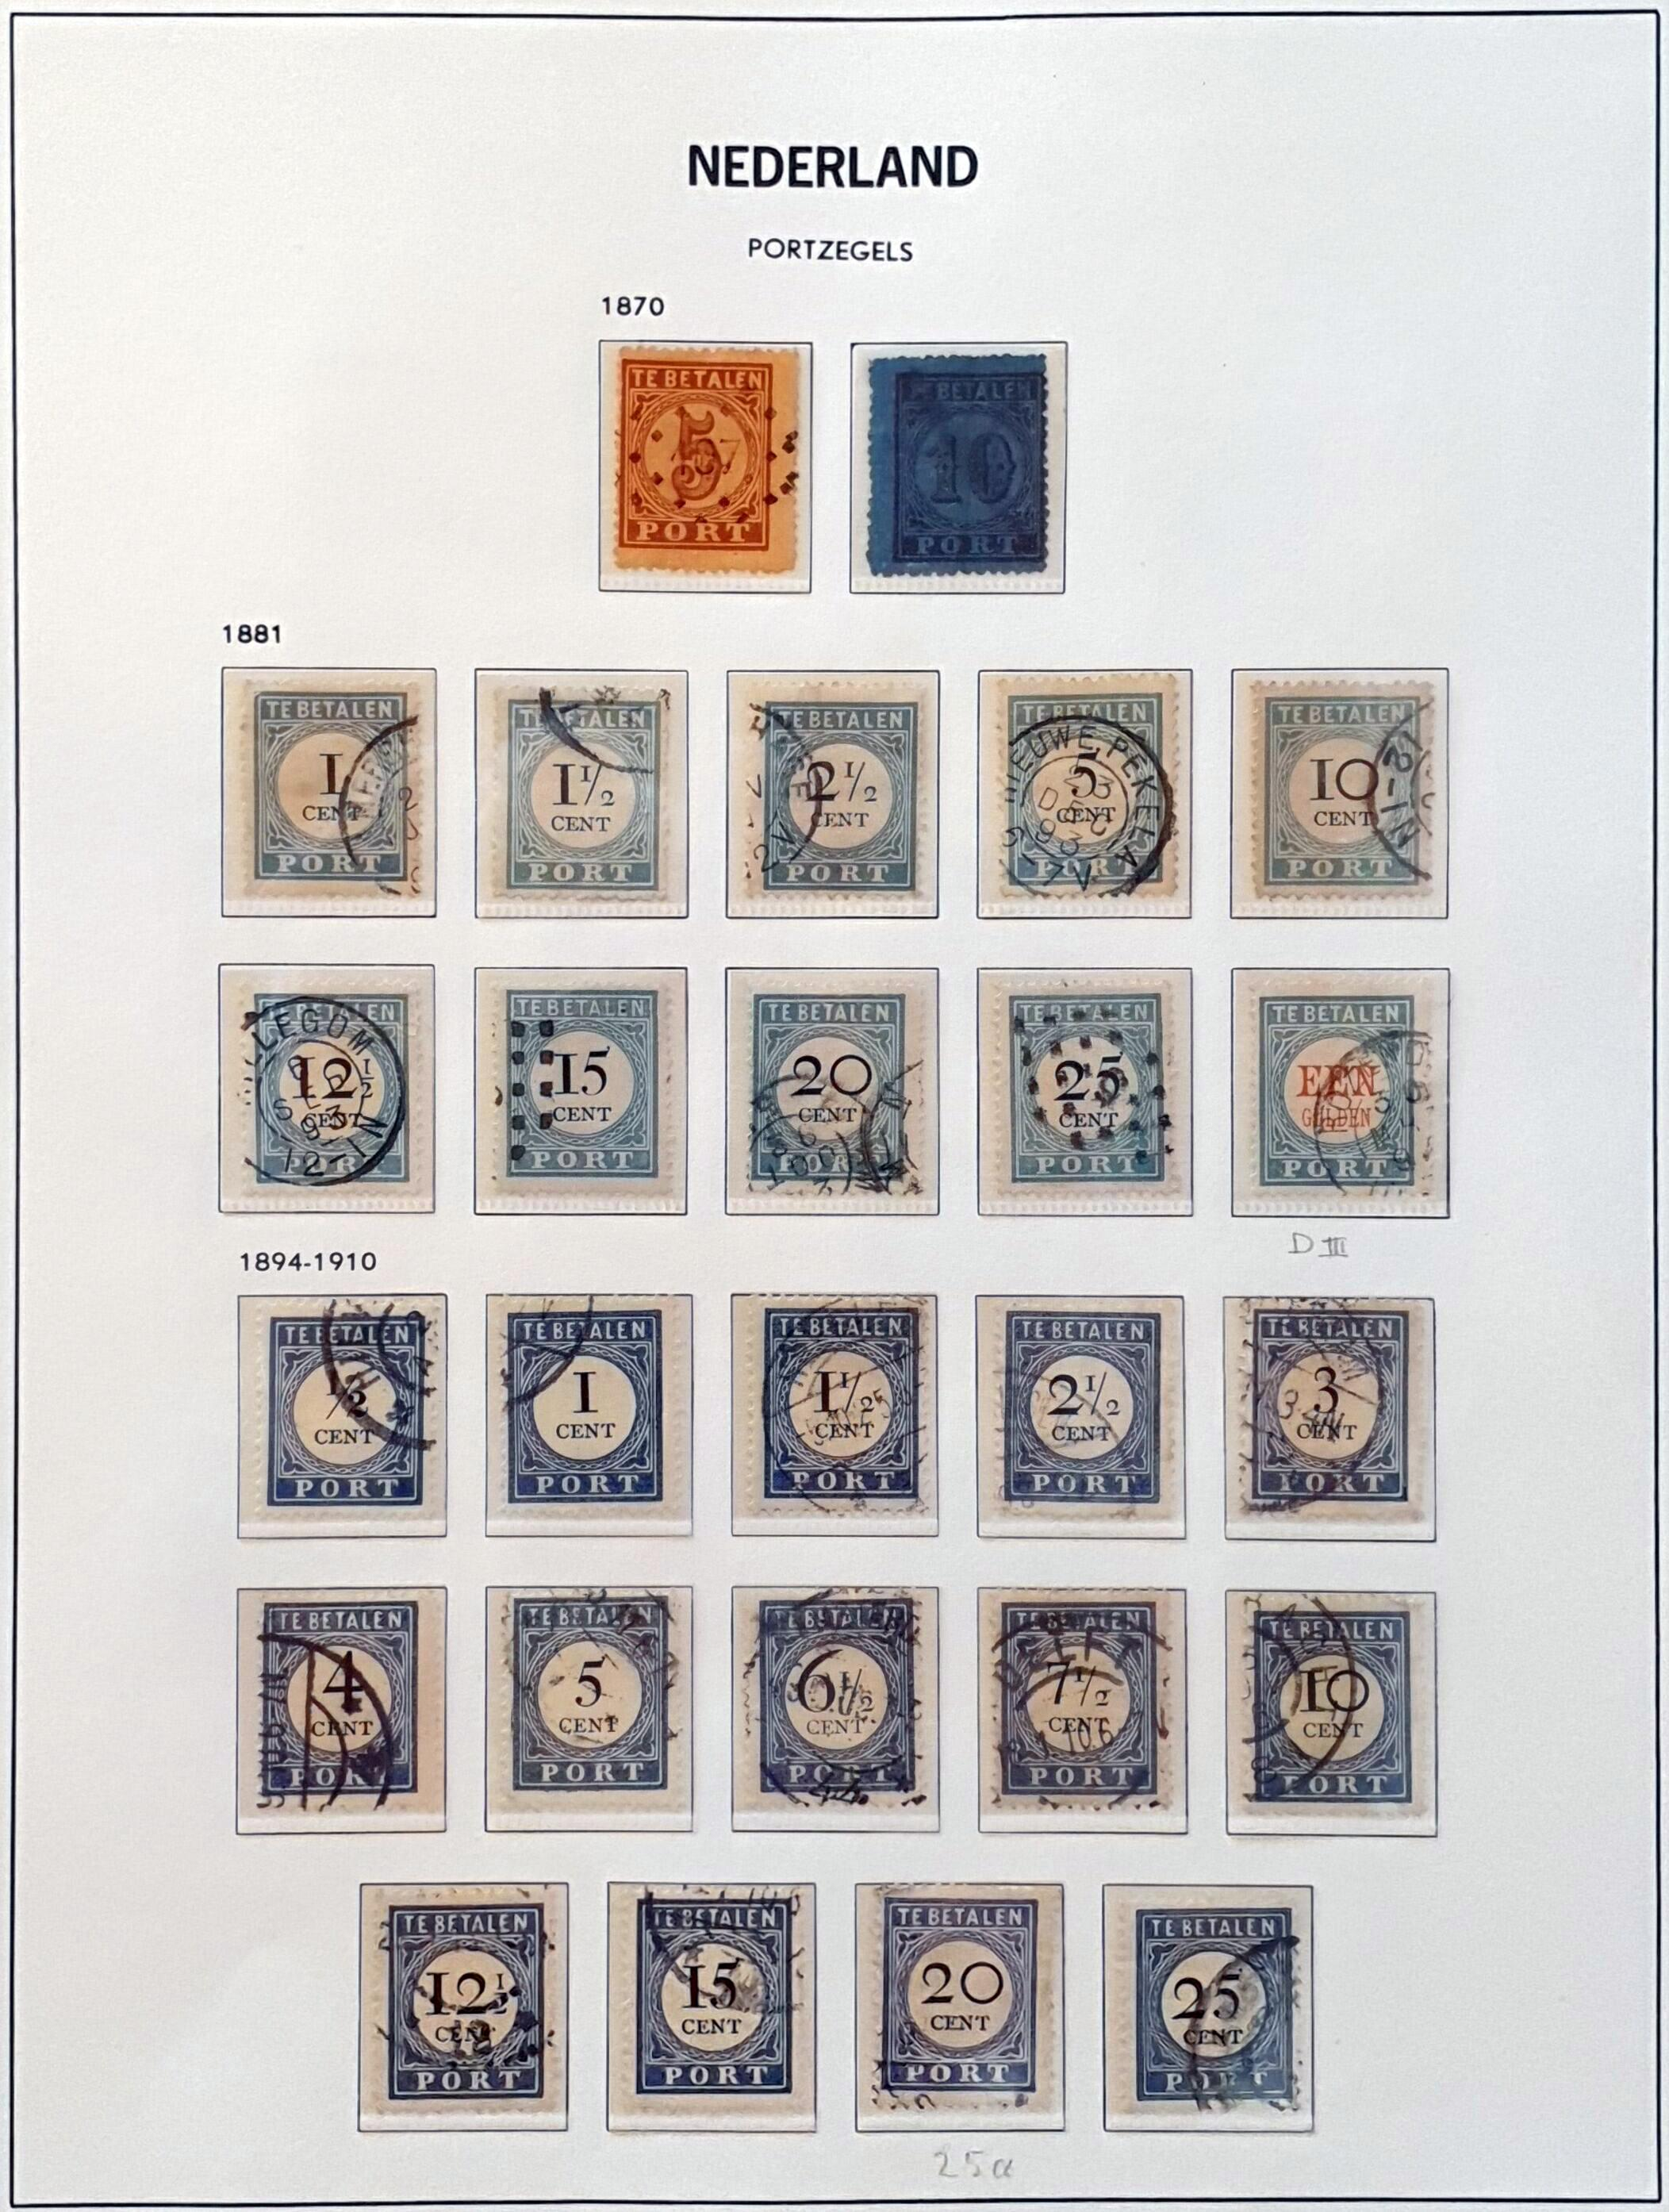 Lot 1620 - Netherlands and former colonies Netherlands -  Corinphila Veilingen Auction 250-253 - Day 2 - Coins, medals, Netherlands and former colonies